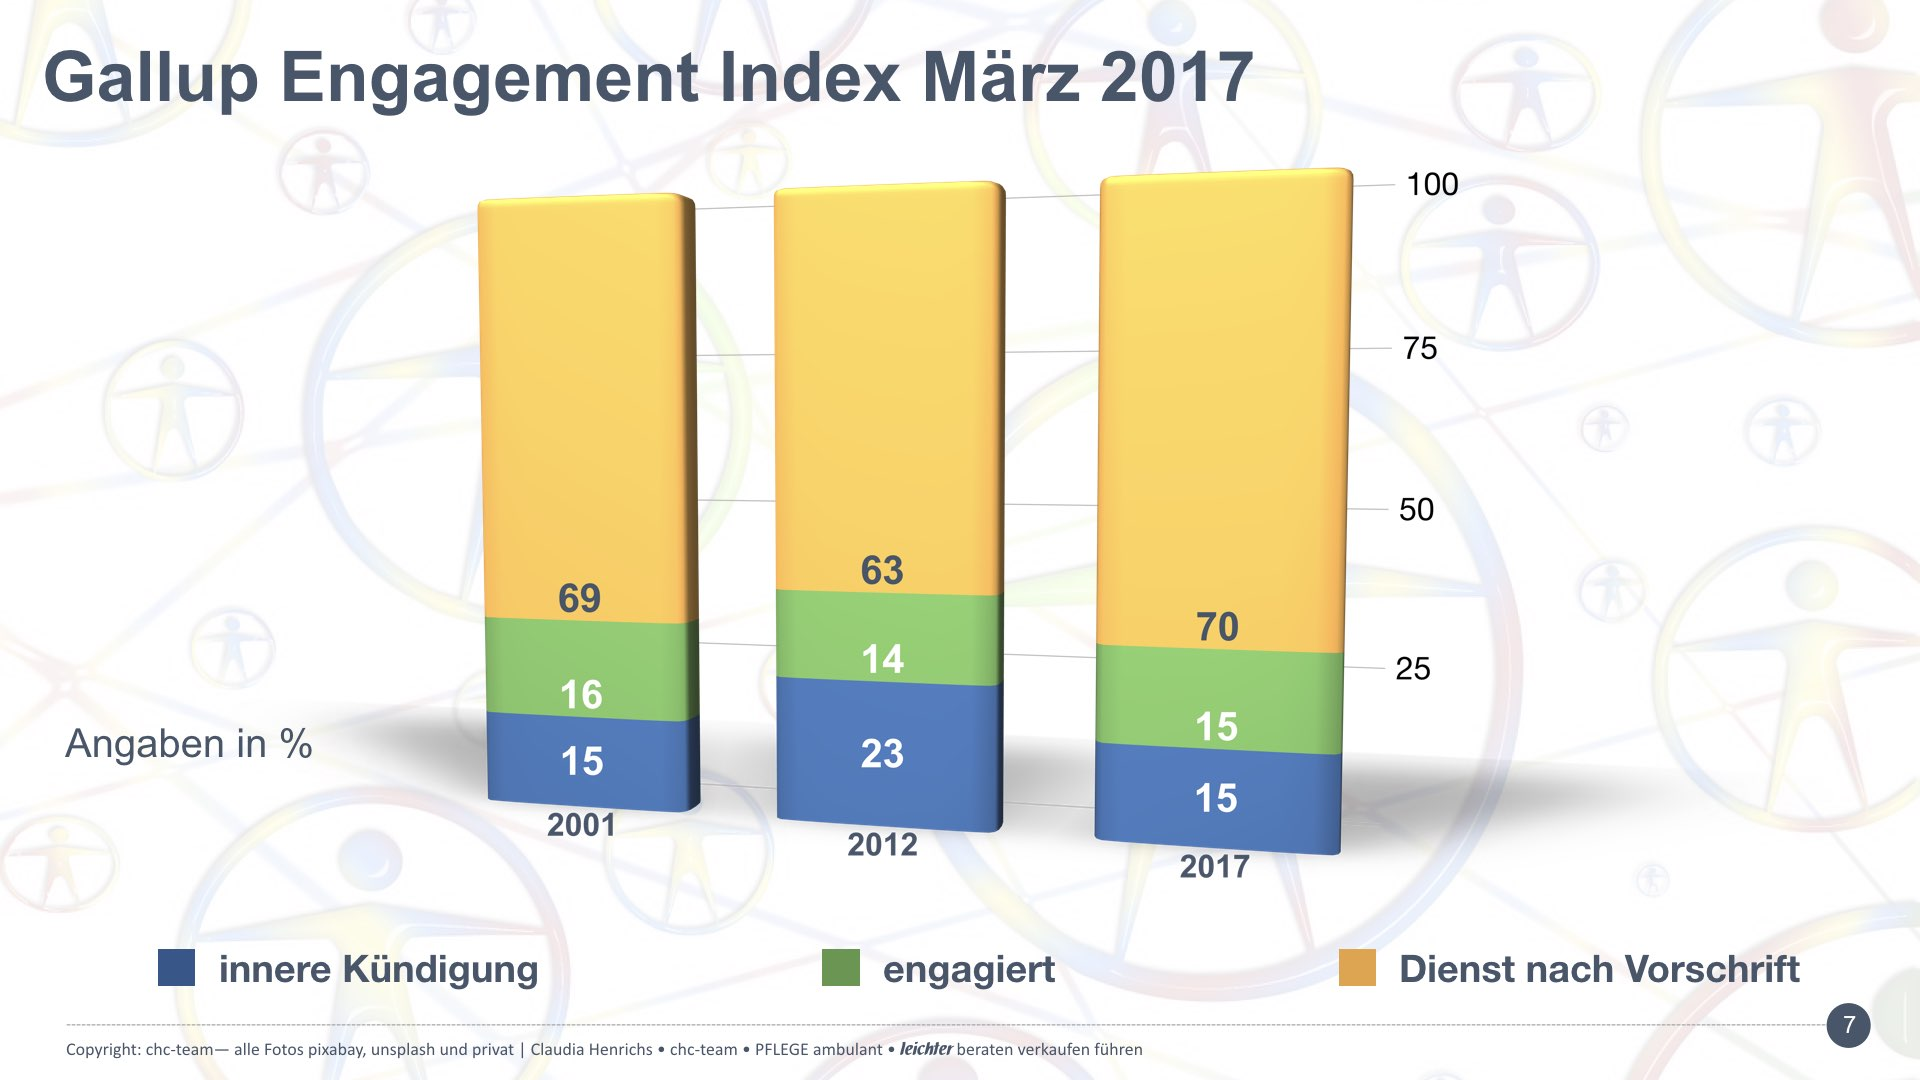 Gallup Engagement Index